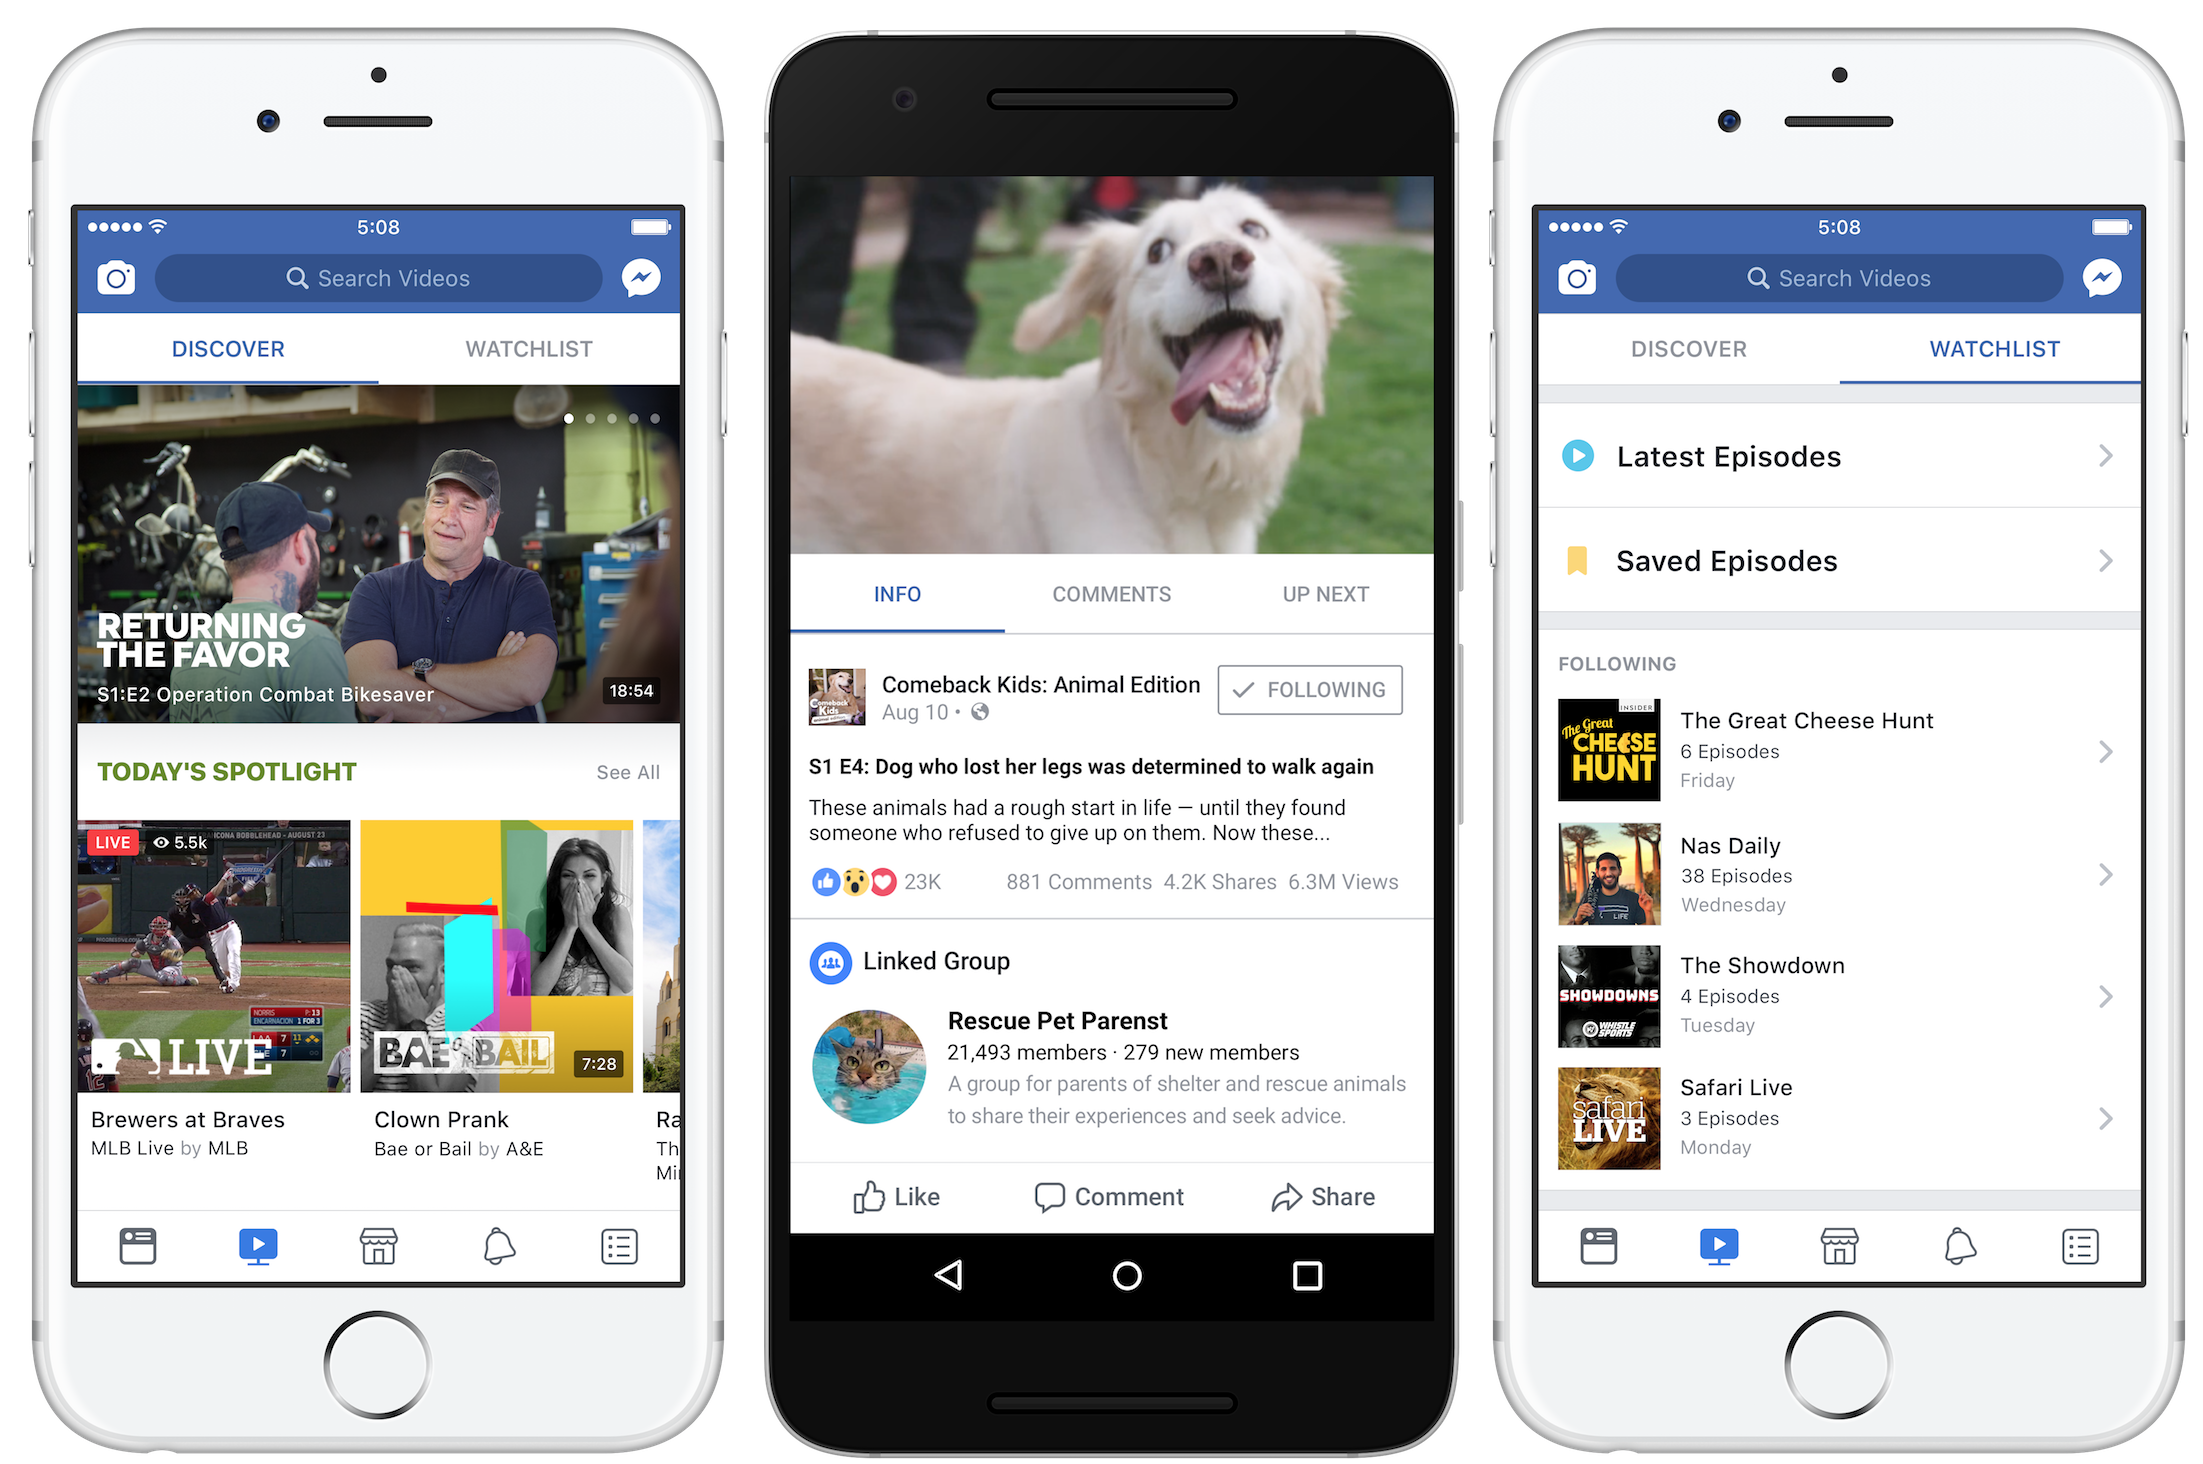 Facebook plans to spend up to $1B on original shows in 2018